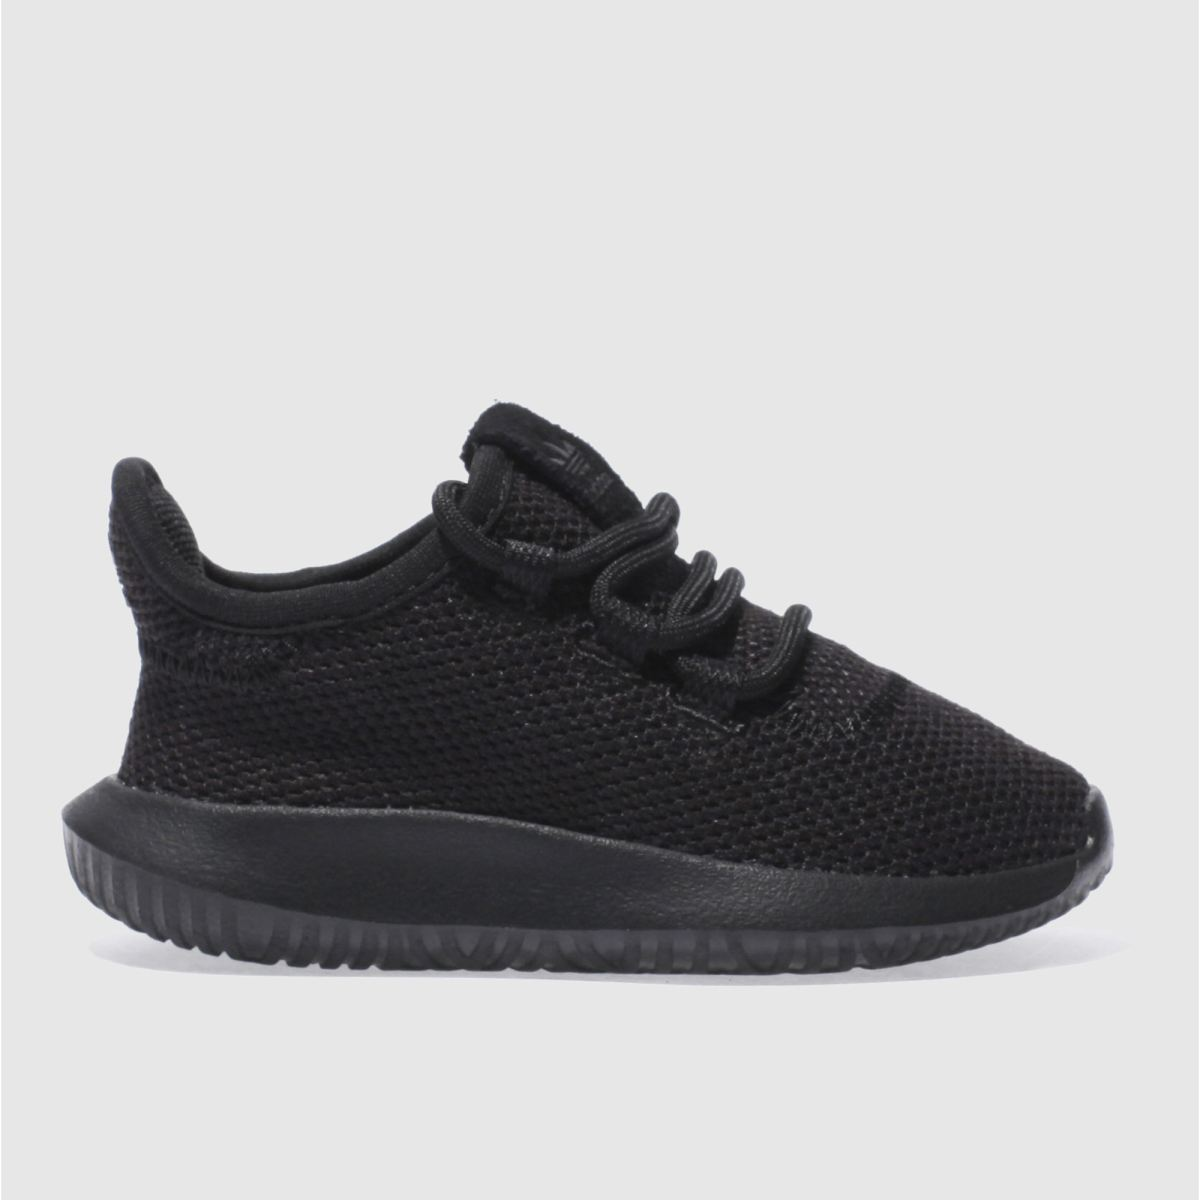 Adidas Black Tubular Shadow Unisex Toddler Toddler